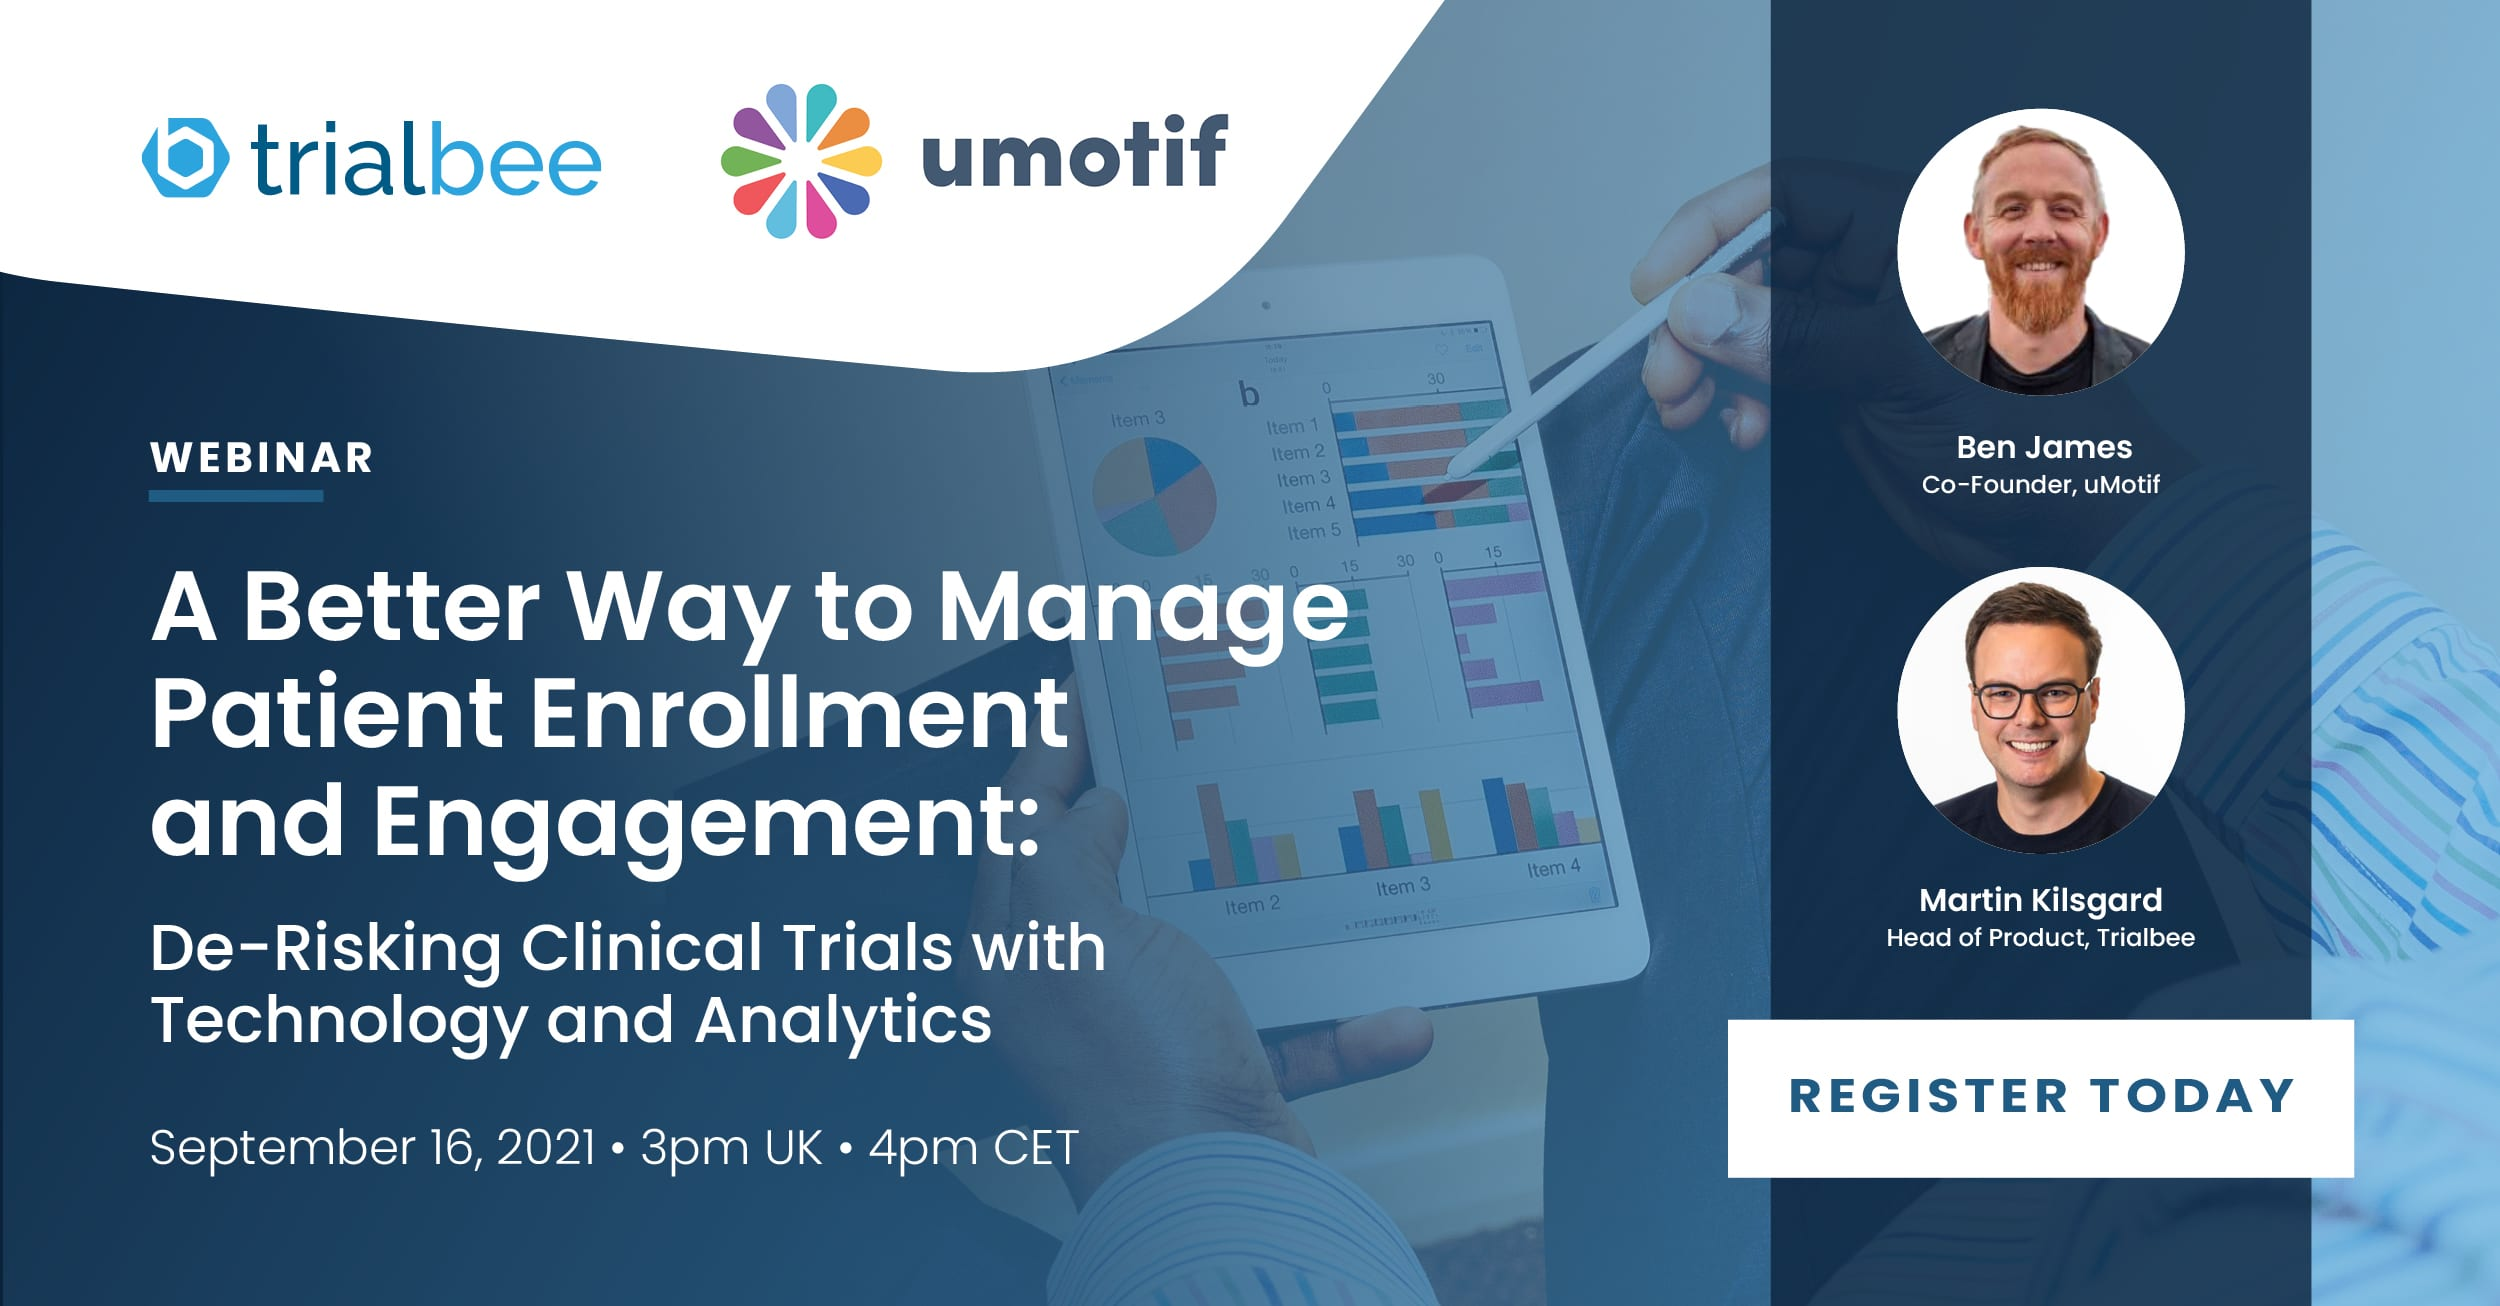 A Better Way to Manage Patient Enrollment and Engagement: De-Risking Clinical Trials with Technology and Analytics